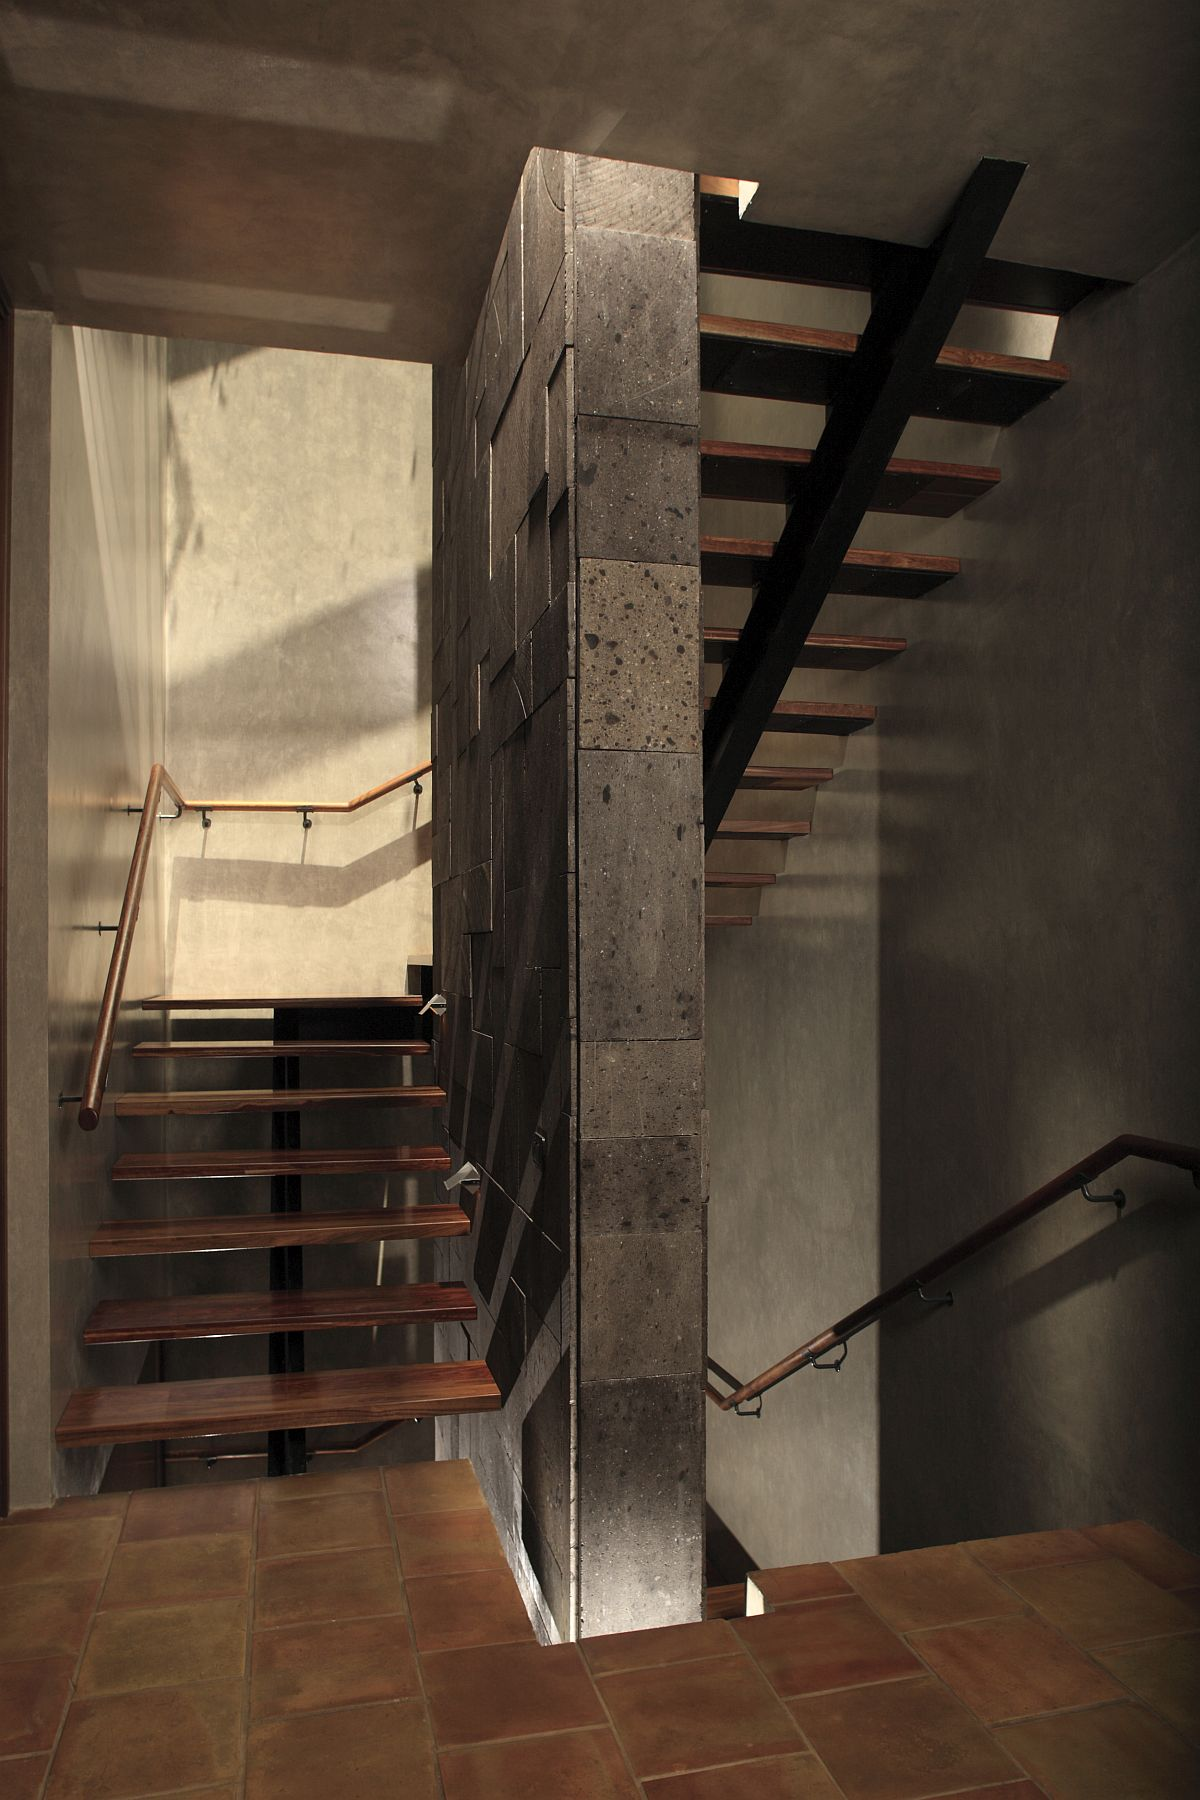 Simple-modern-staircase-of-the-house-keeps-things-elegant-and-understated